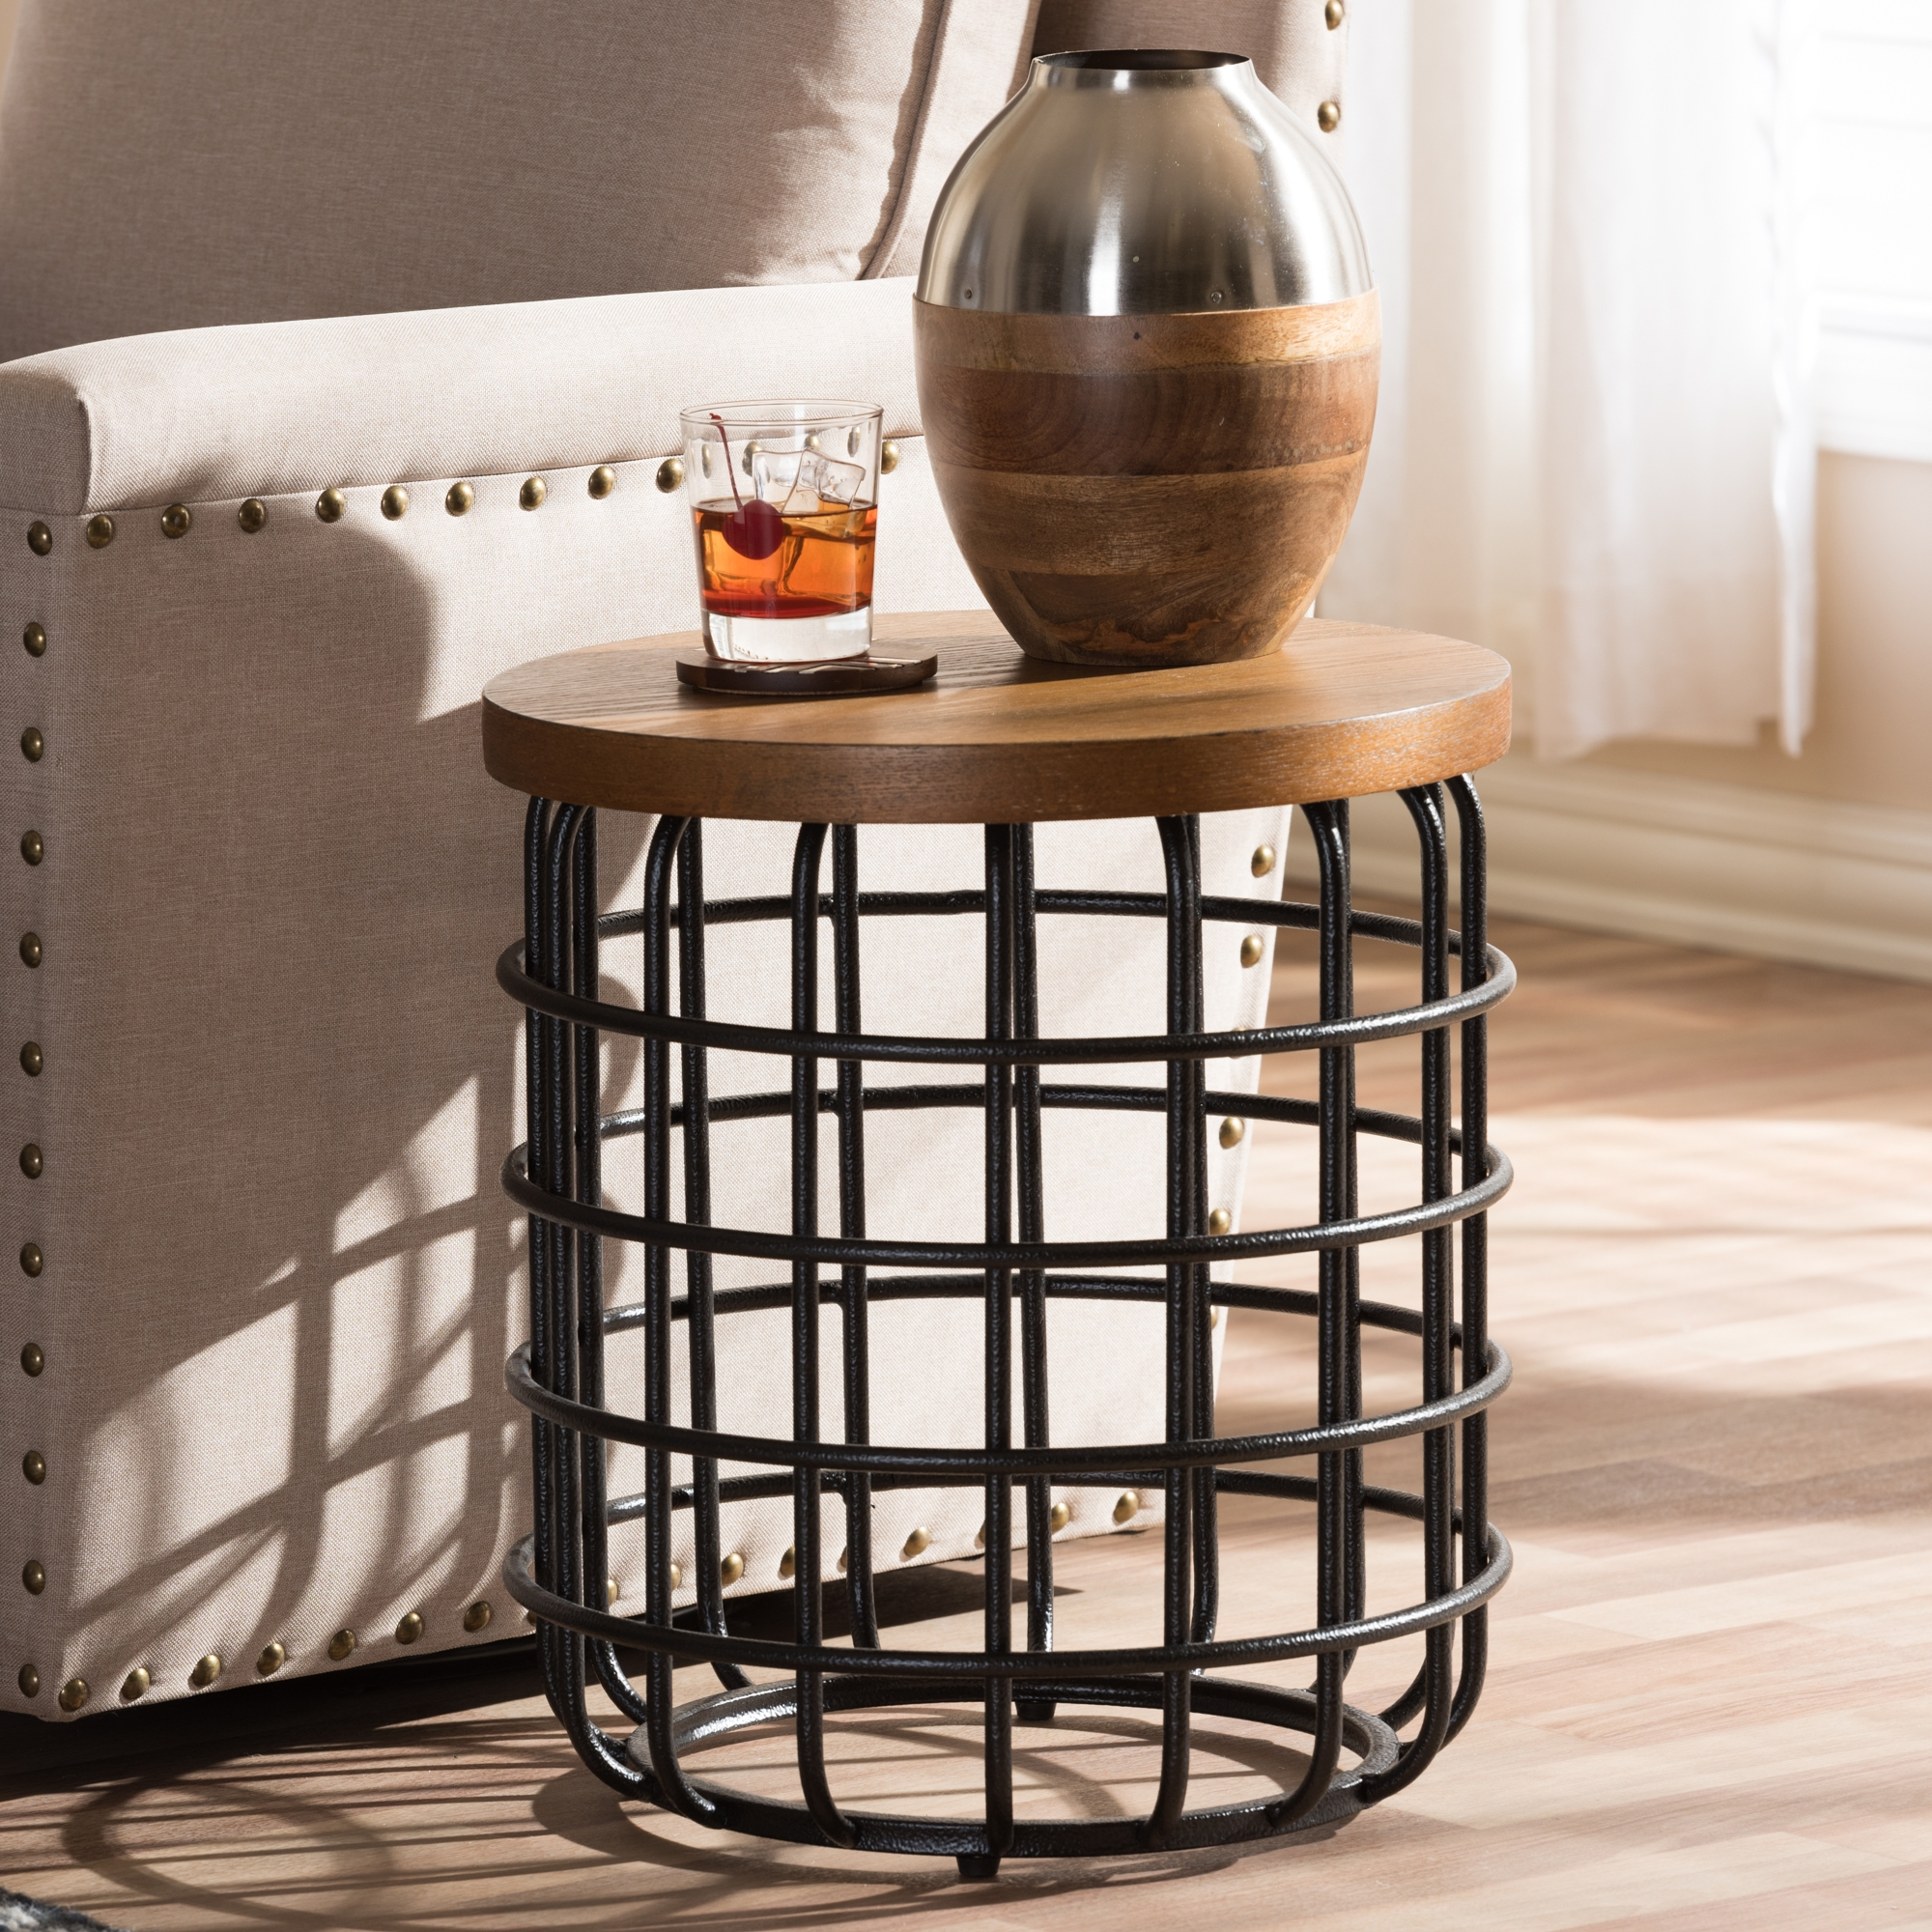 ... Baxton Studio Carie Rustic Industrial Style Antique Black Textured  Finished Metal Distressed Wood Accent Table ...